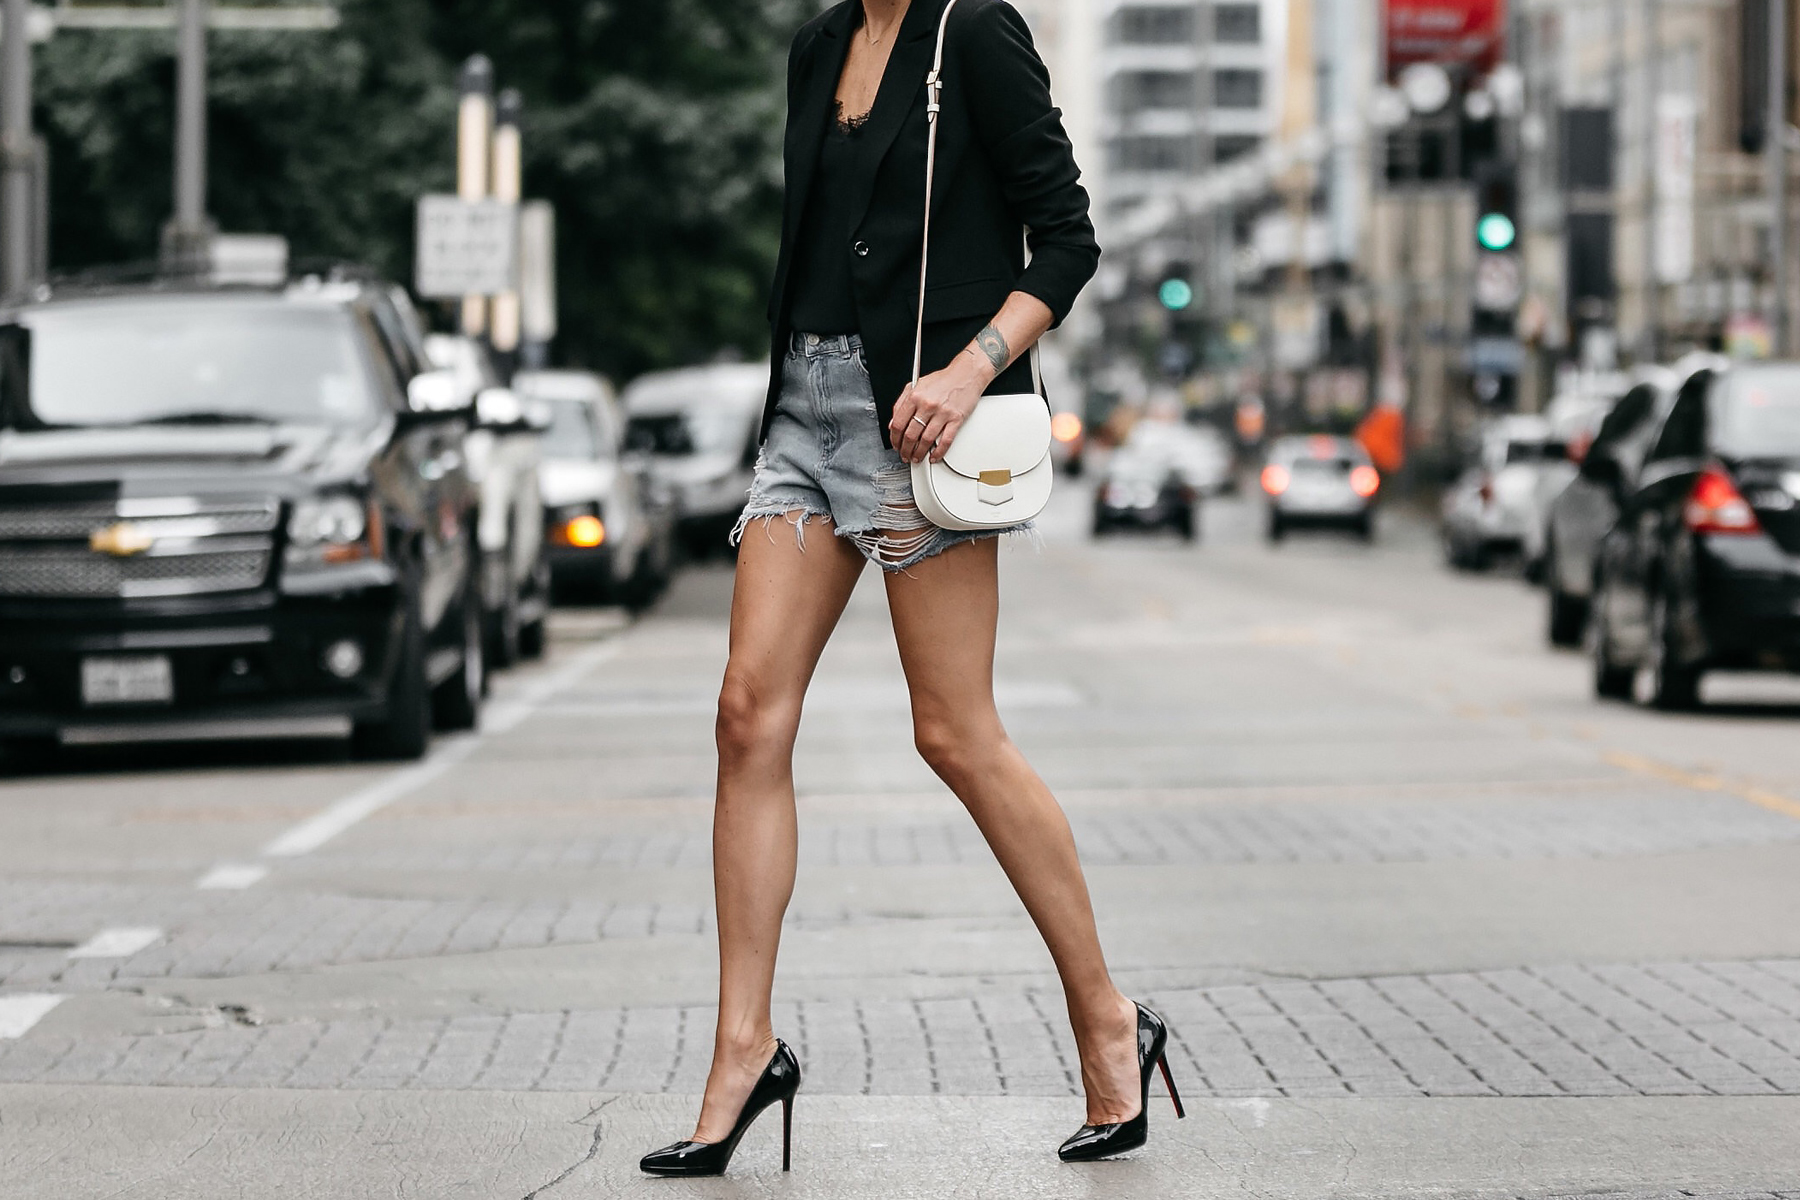 Nordstrom Black Blazer Topshop Denim Cutoff Shorts Outfit Christian Louboutin Black Pumps Celine White Trotteur Handbag Street Style Dallas Blogger Fashion Blogger